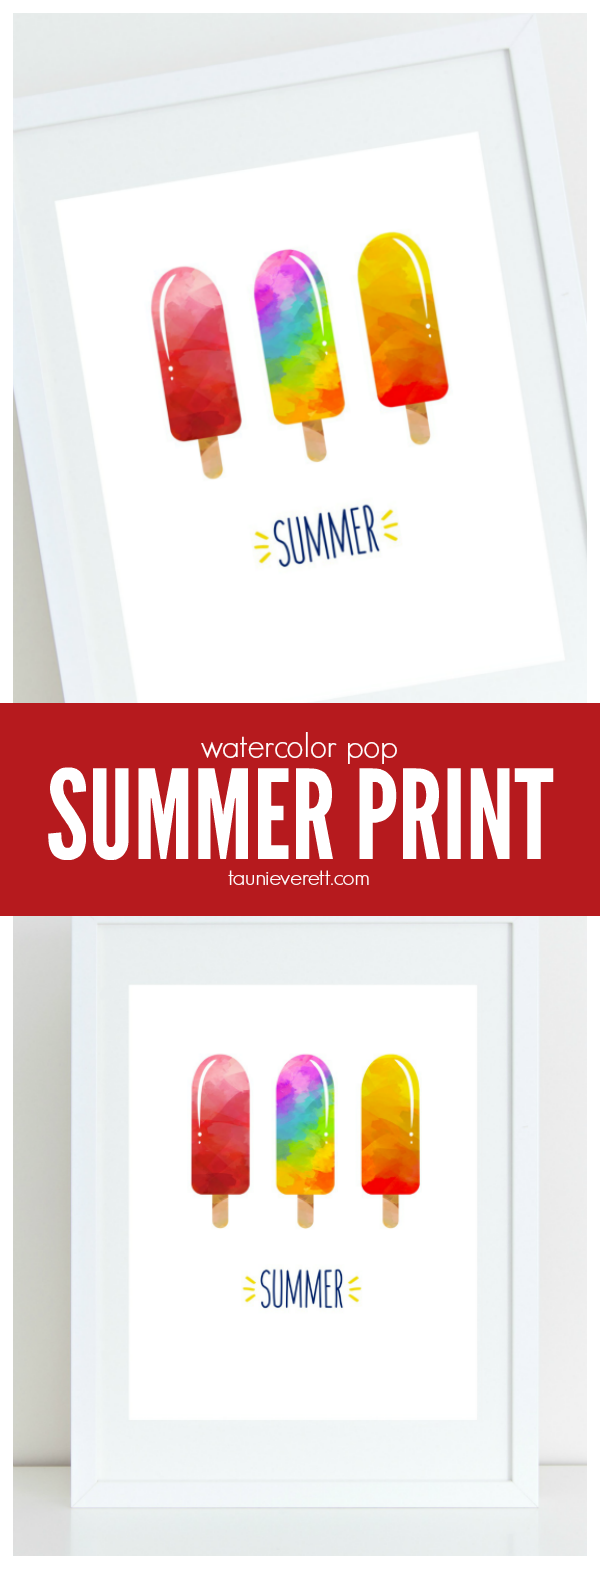 Summer watercolor pop print available for free download. Perfect for celebrating the start of summer.